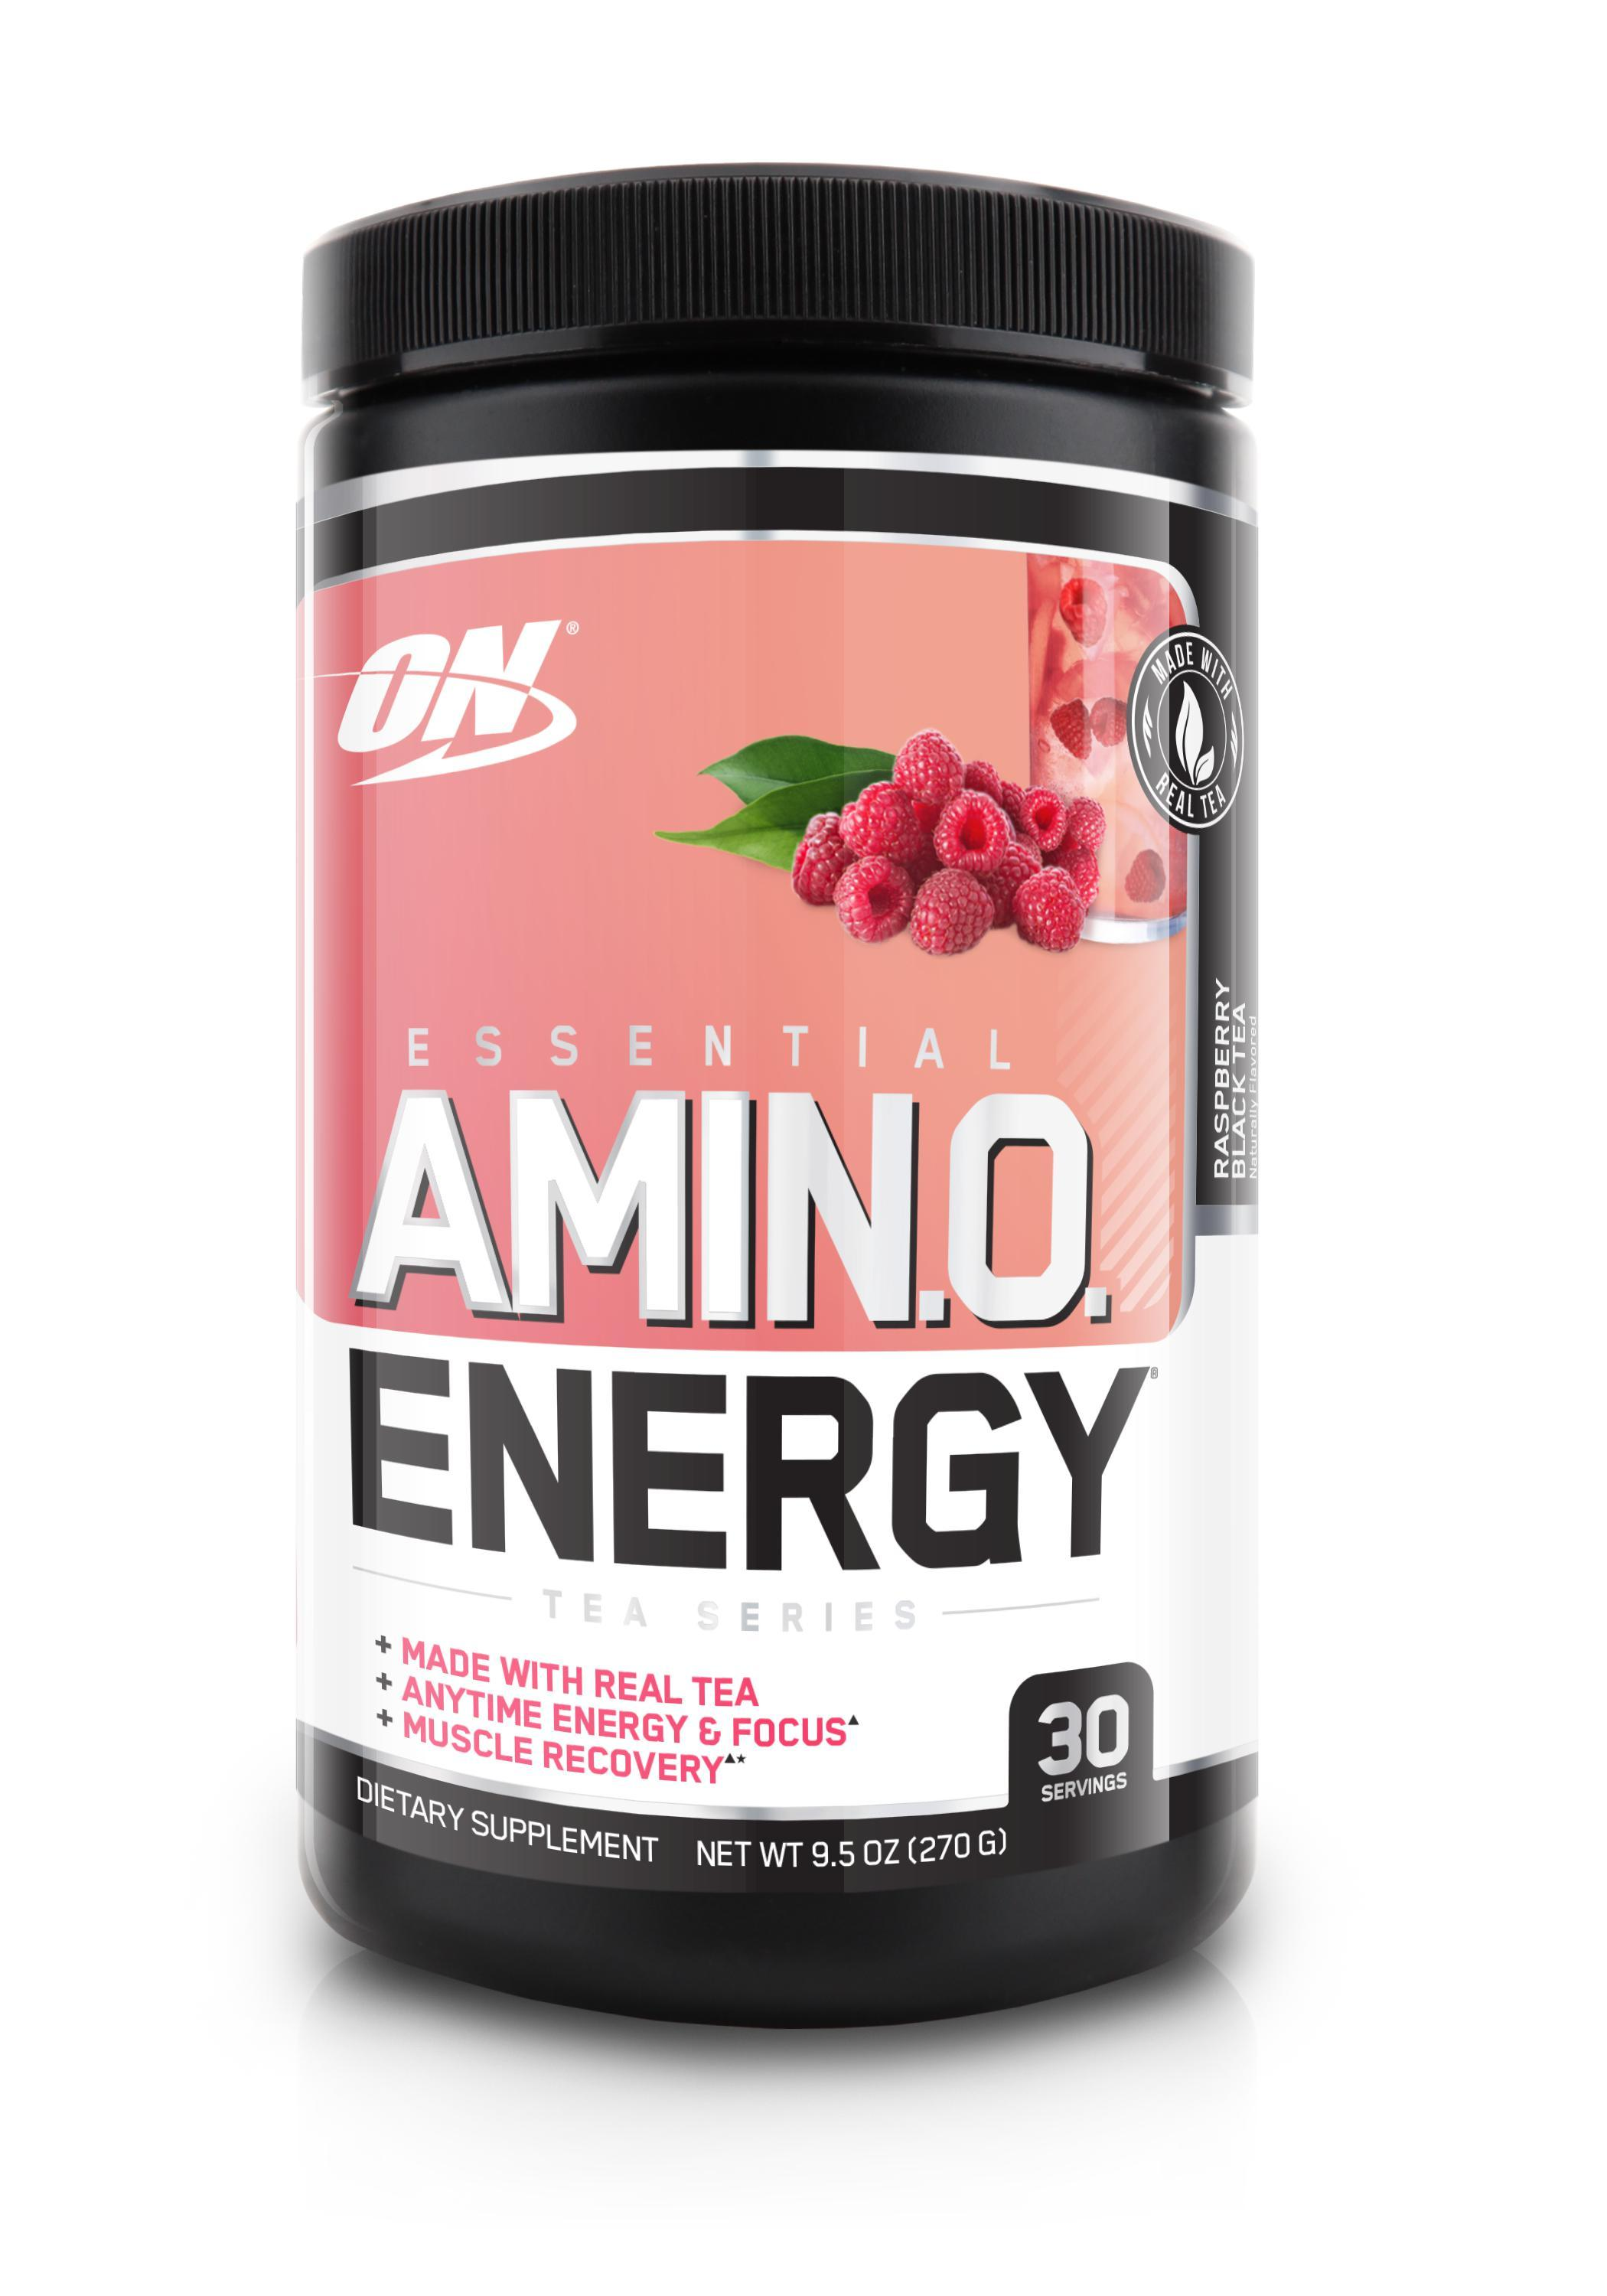 ON Essential Amino Energy Tea Series-Sports Nutrition - Amino Acid-Optimum Nutrition-30 Serves-Raspberry Black Tea-Thrive Health and Nutrition